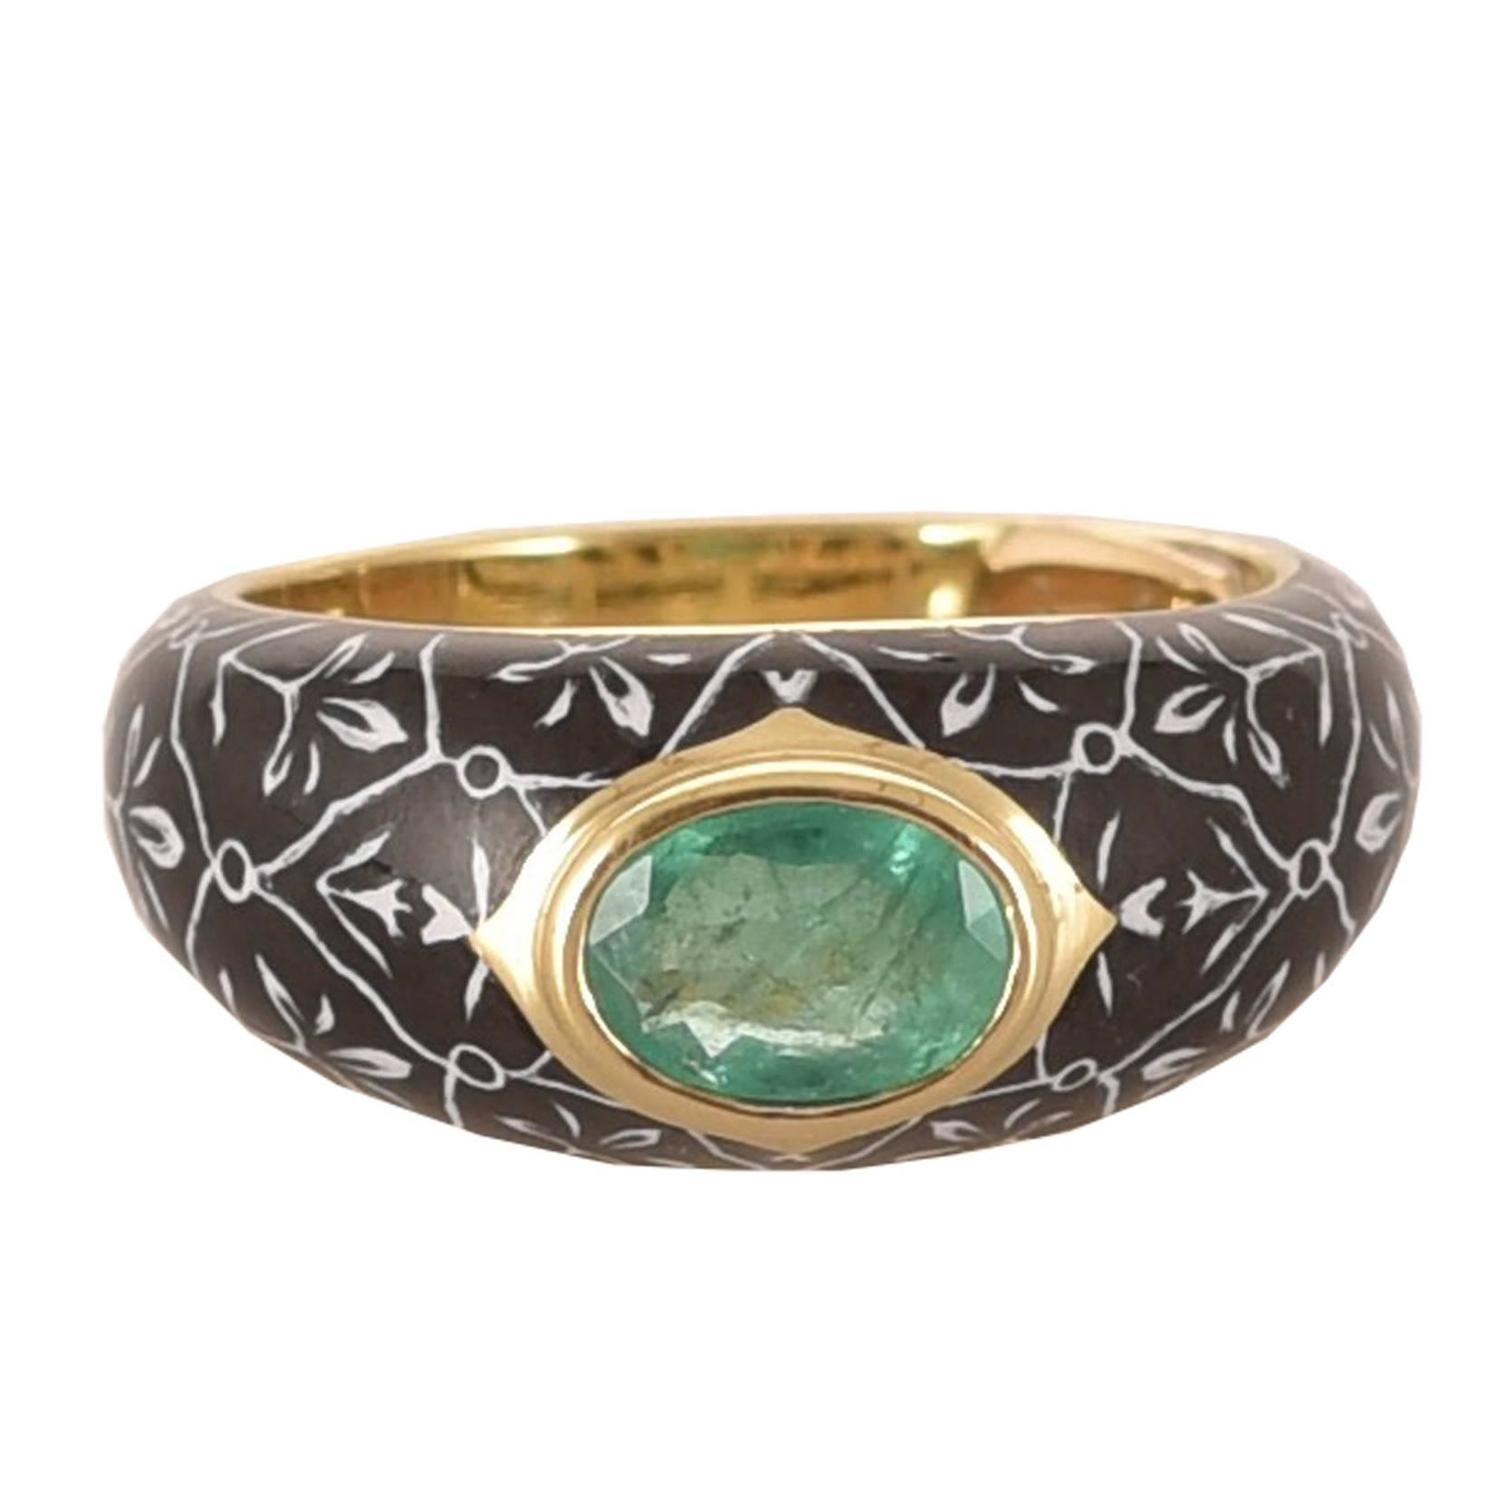 unique gold ring with emerald and enamel by diego percossi